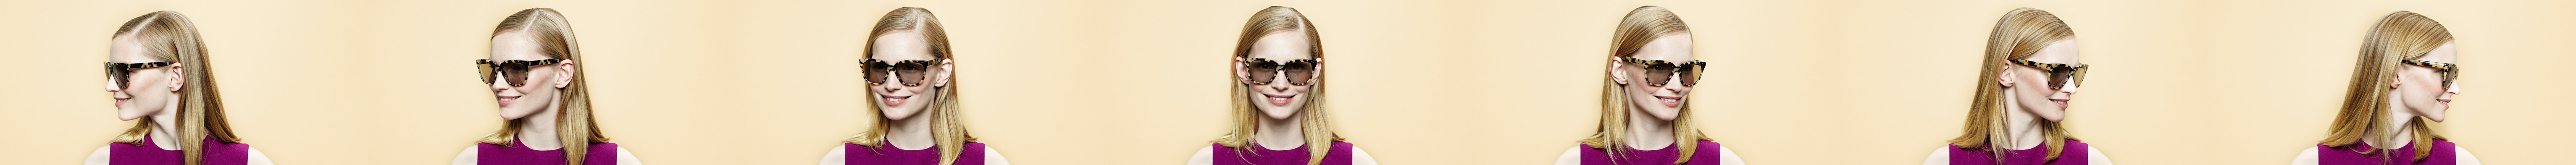 Reilly - Sunglasses - Women   Warby Parker